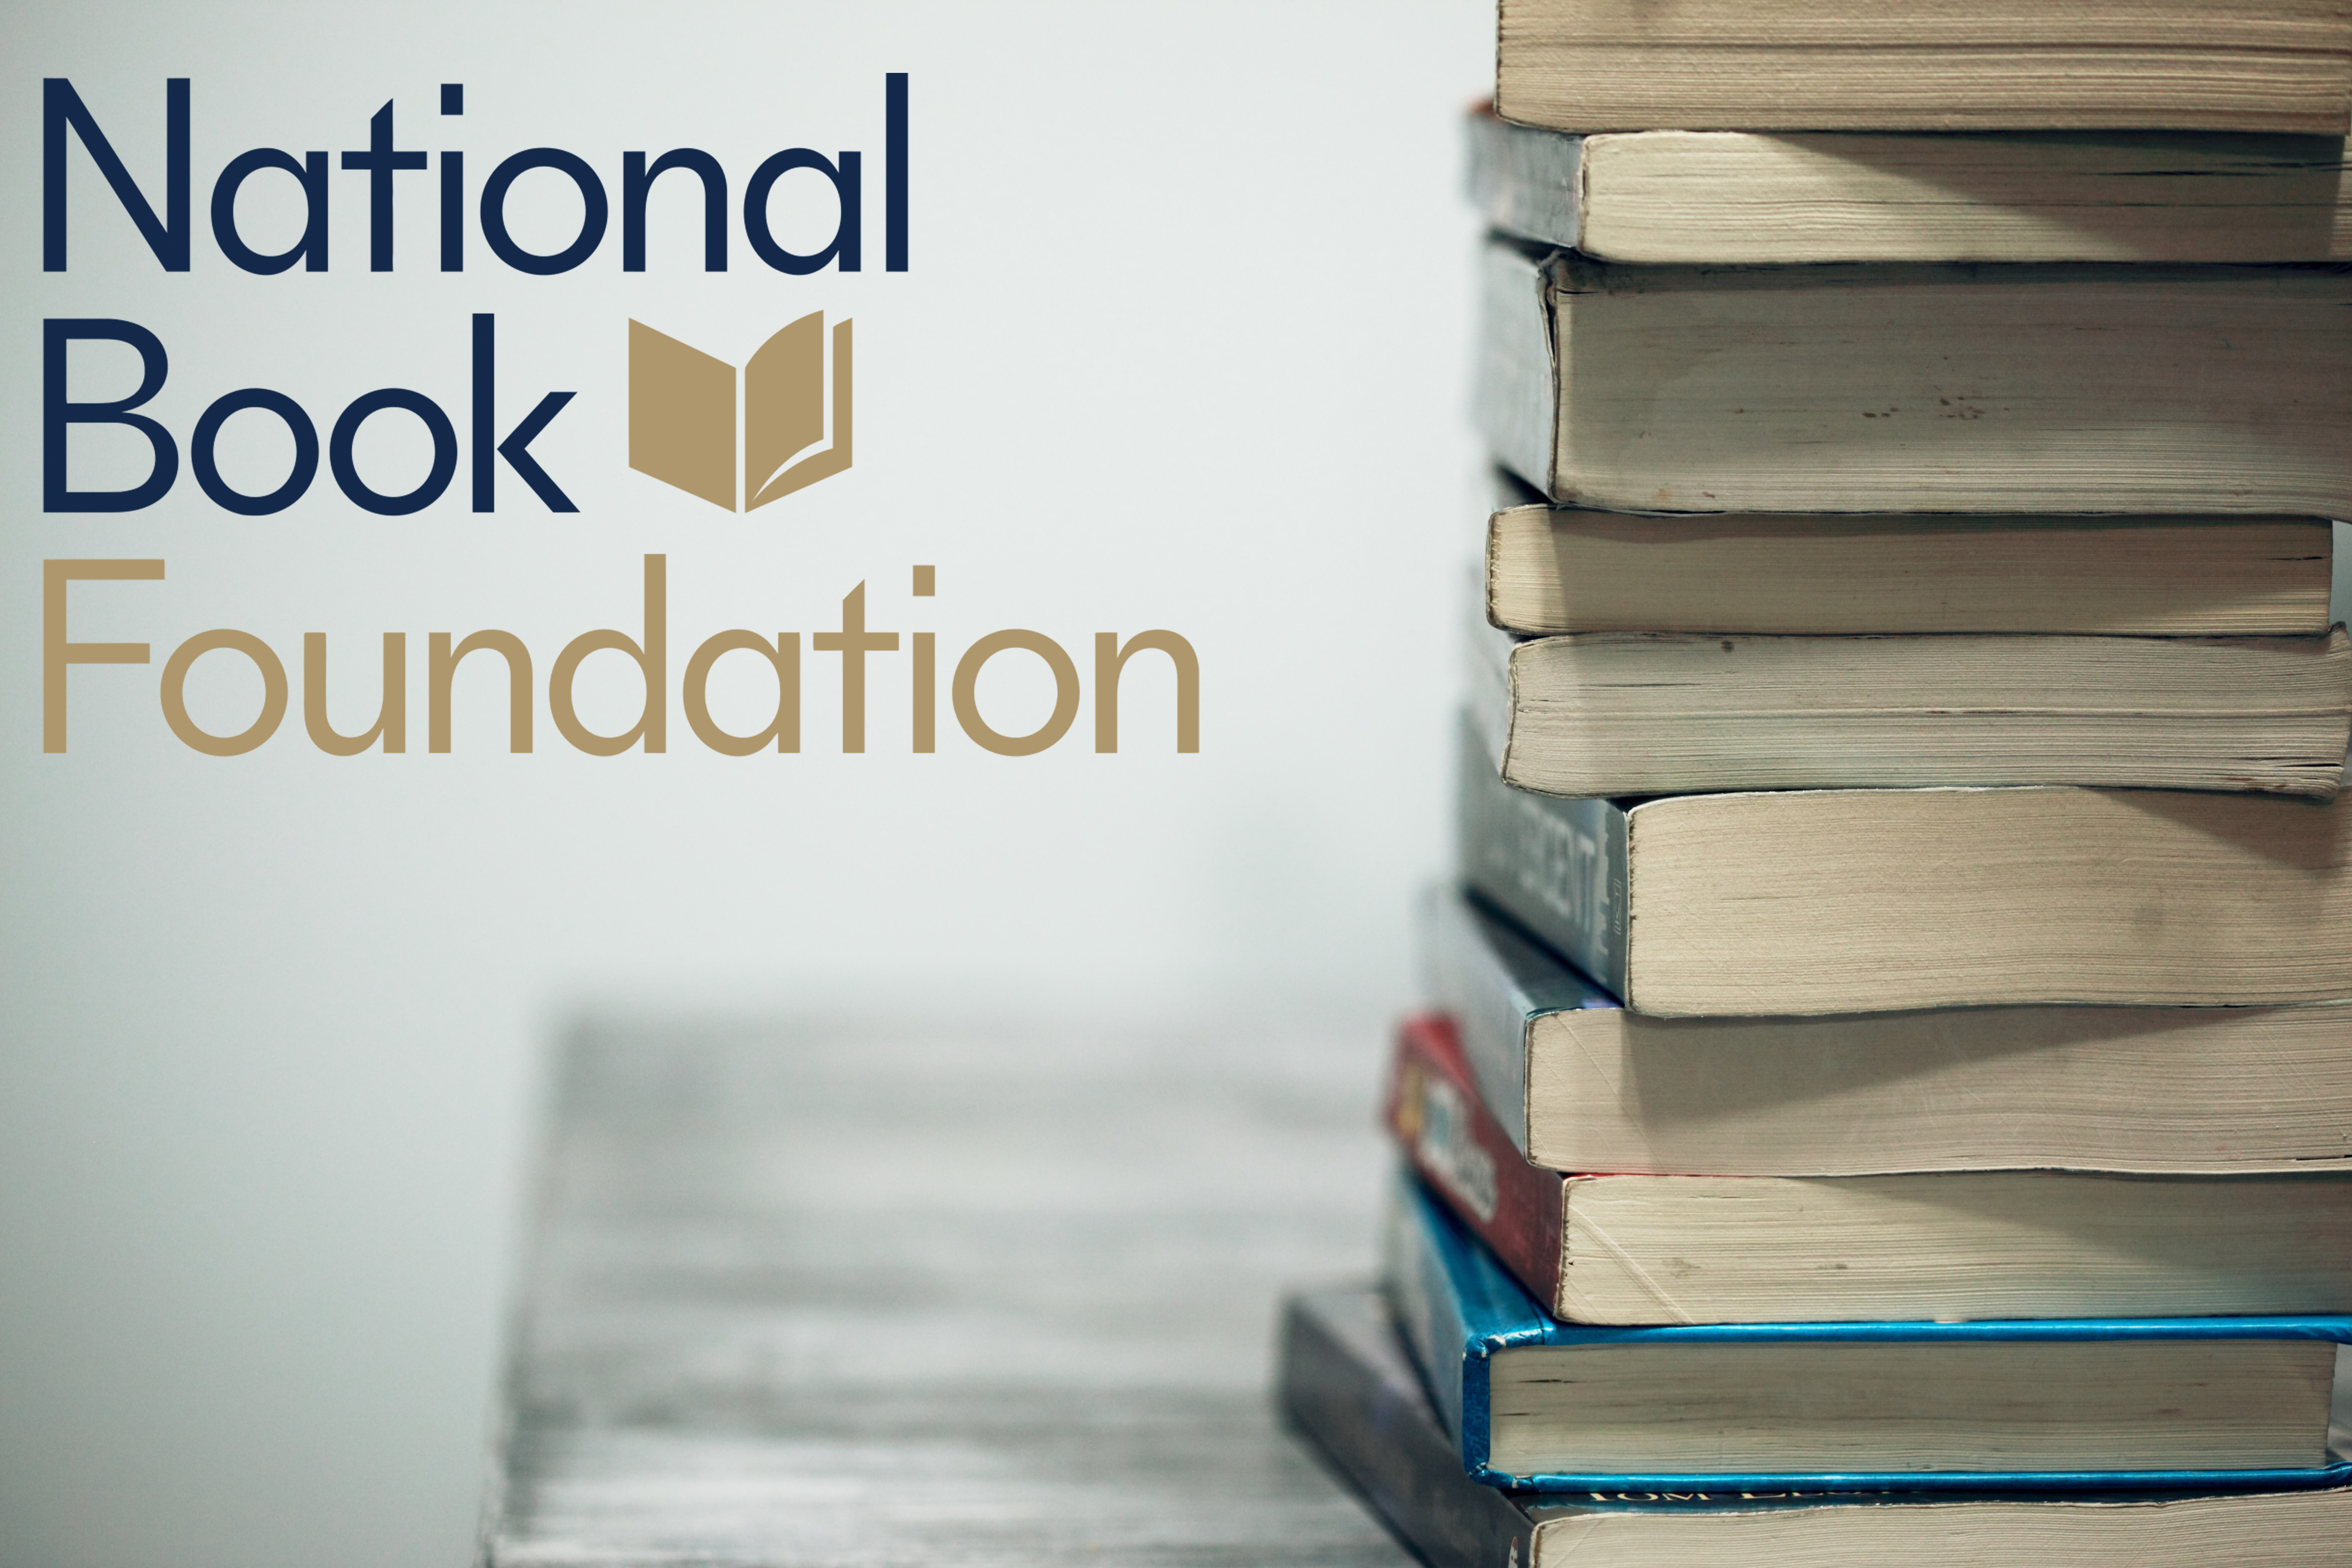 Looking for something great to read? Check out the National Book Award winners this year!